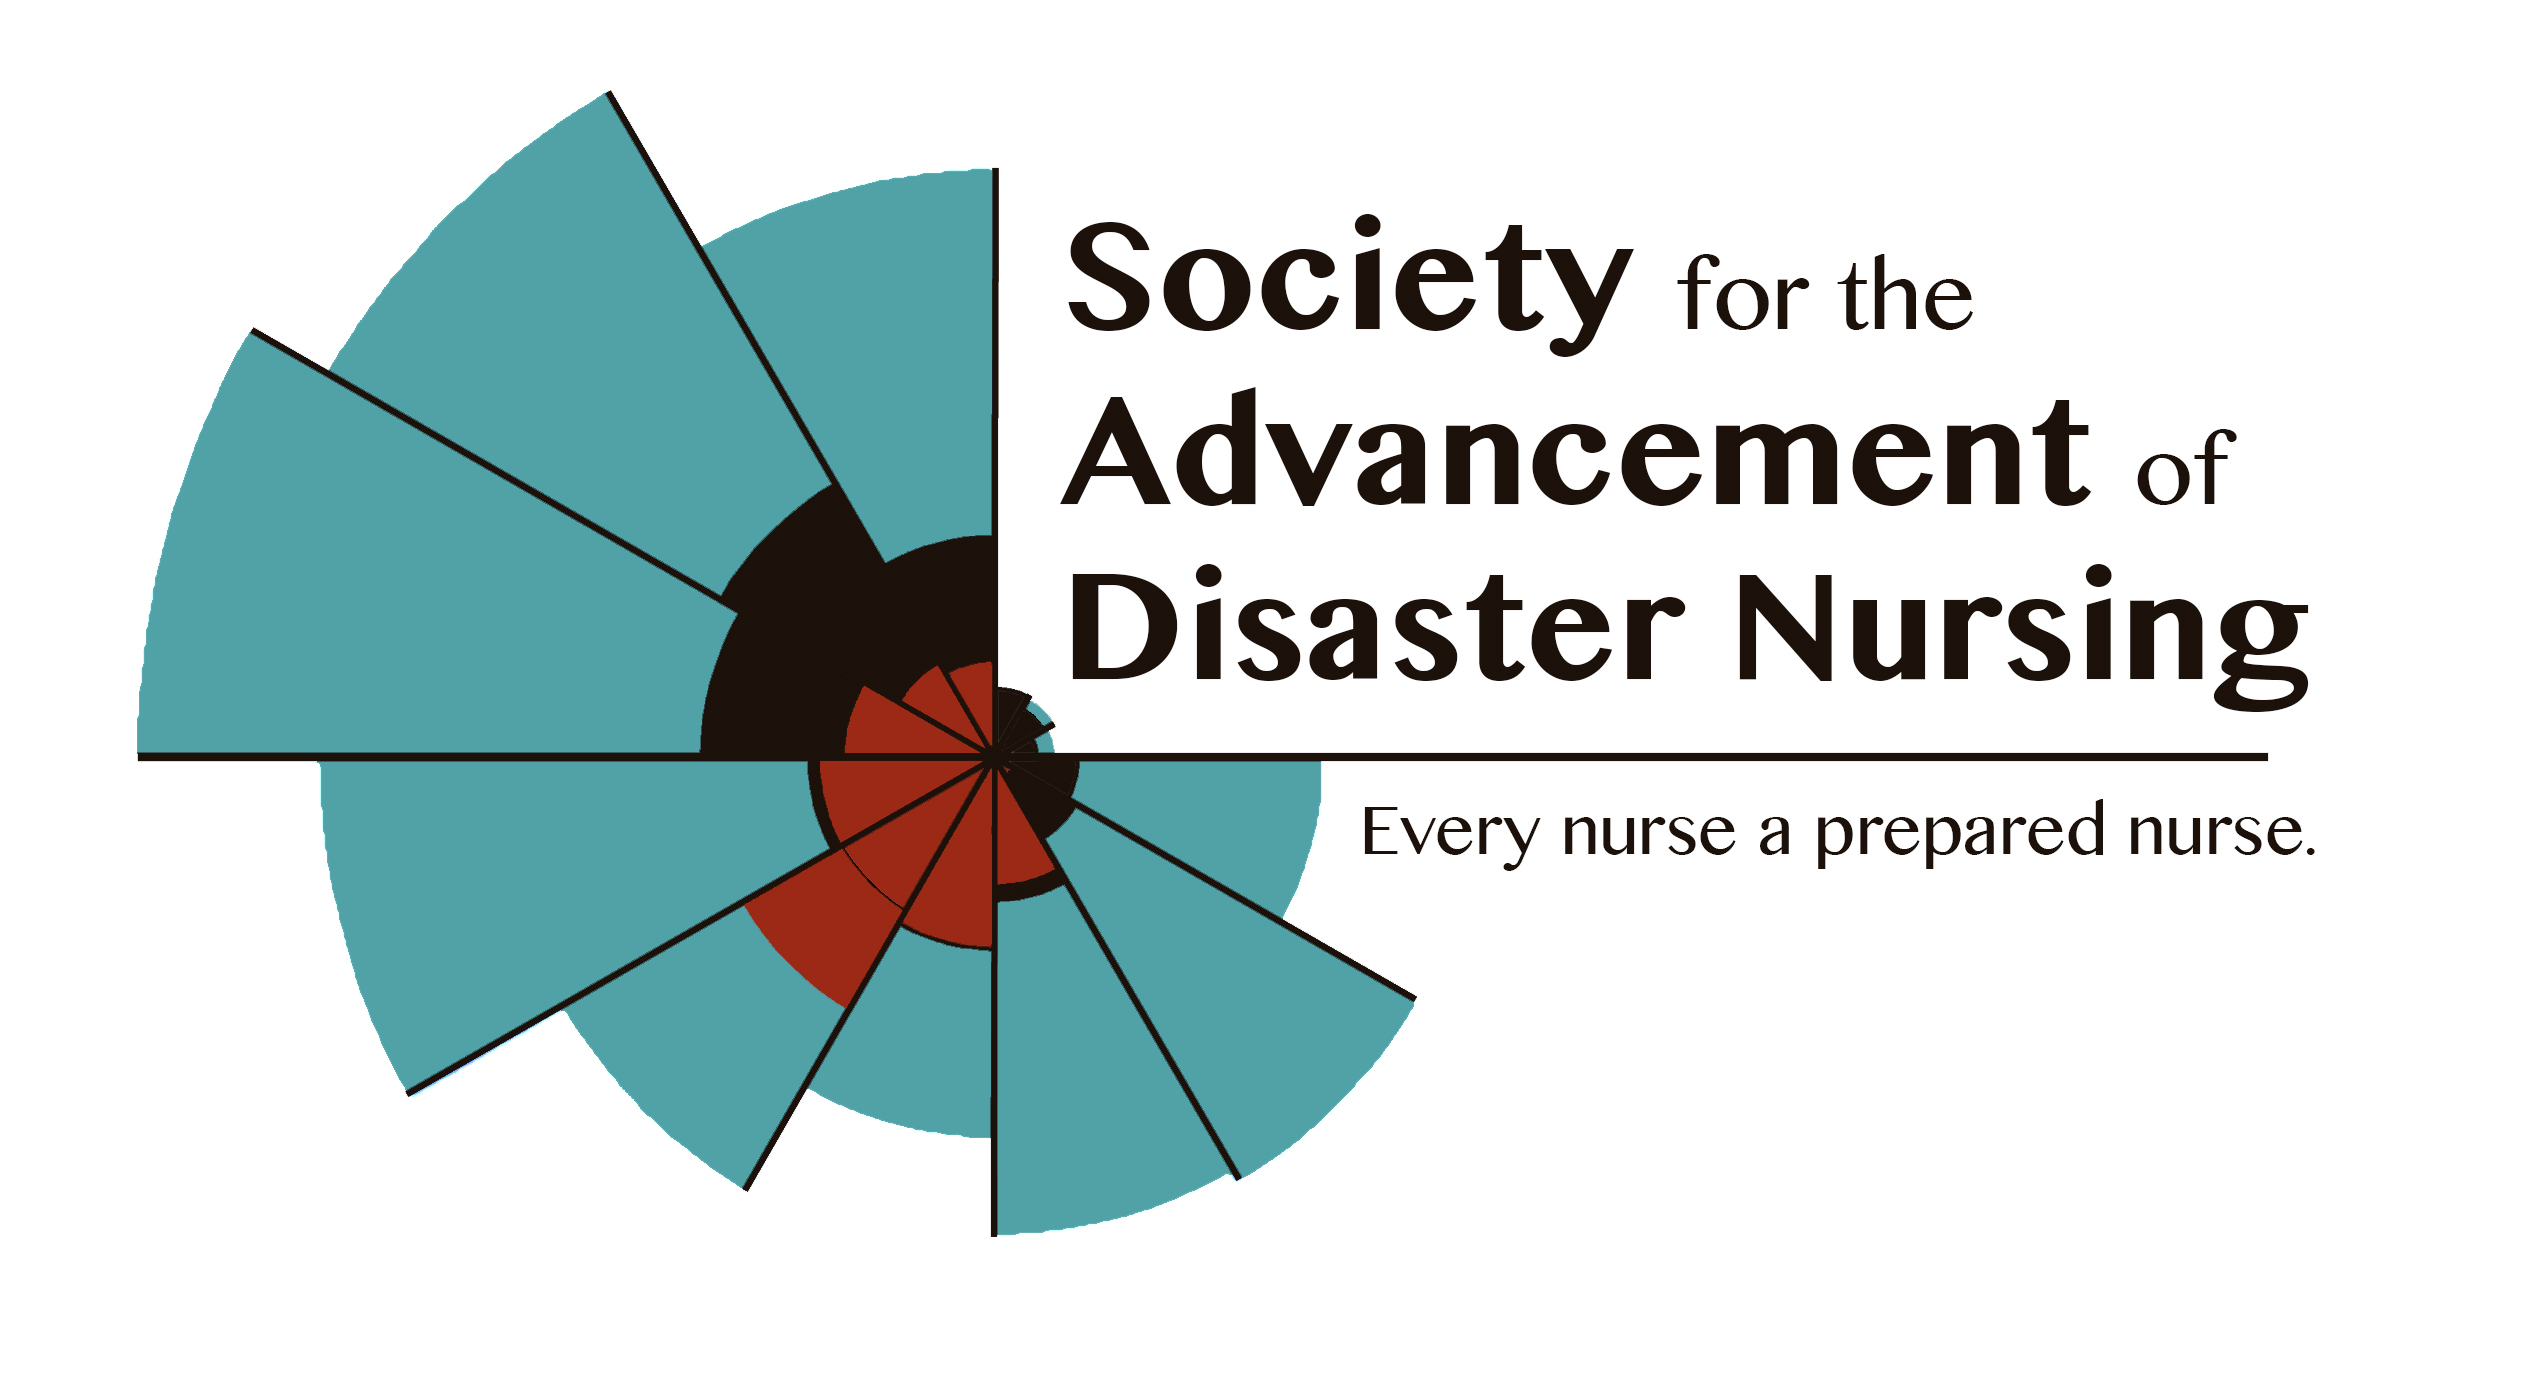 Society for the Advancement of Disaster Nursing